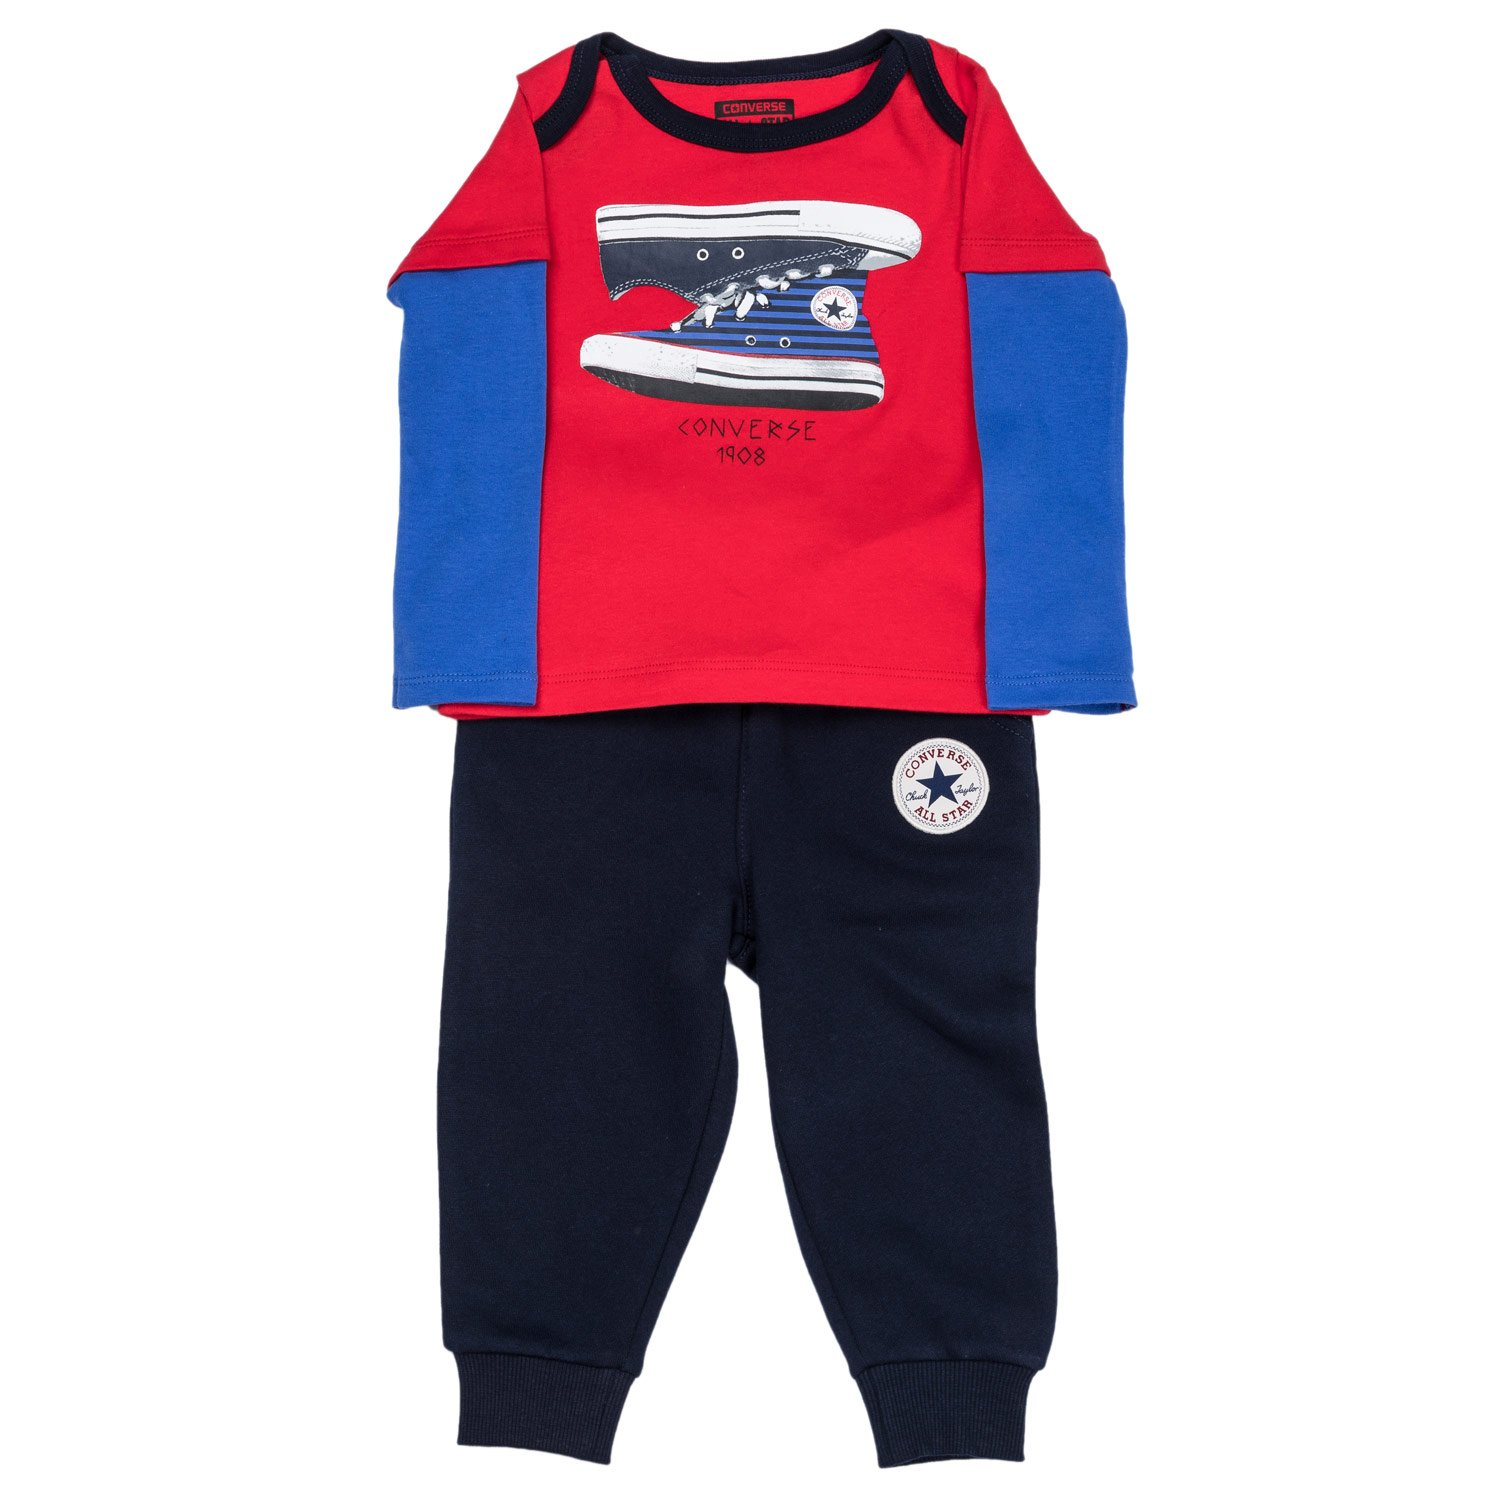 Baby Outfits & Clothing Sets Converse Baby Boys Clothing Set